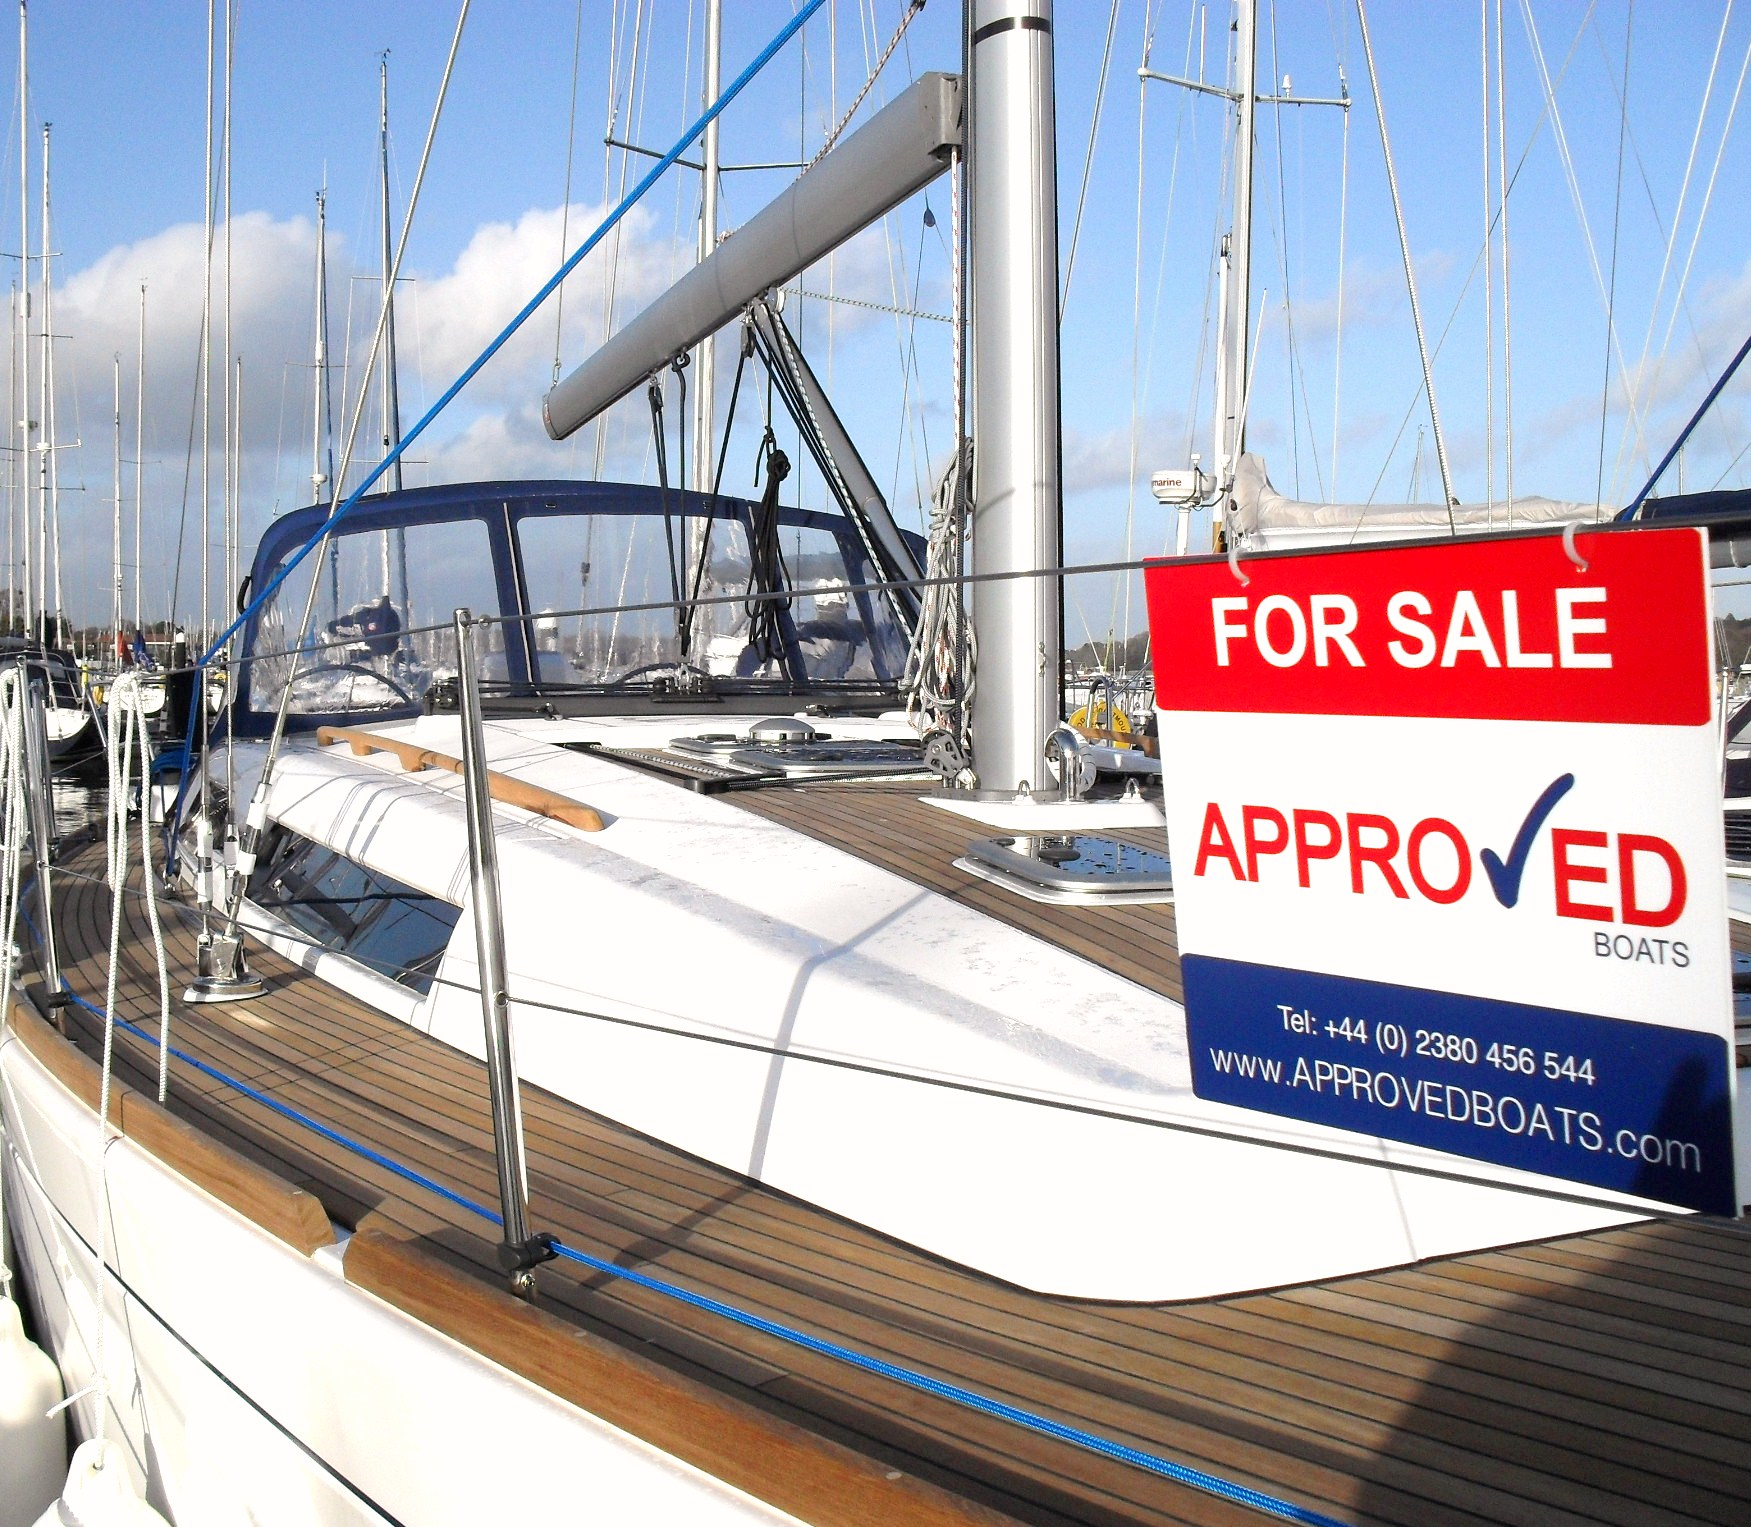 Boats for Sale - Approved Boats